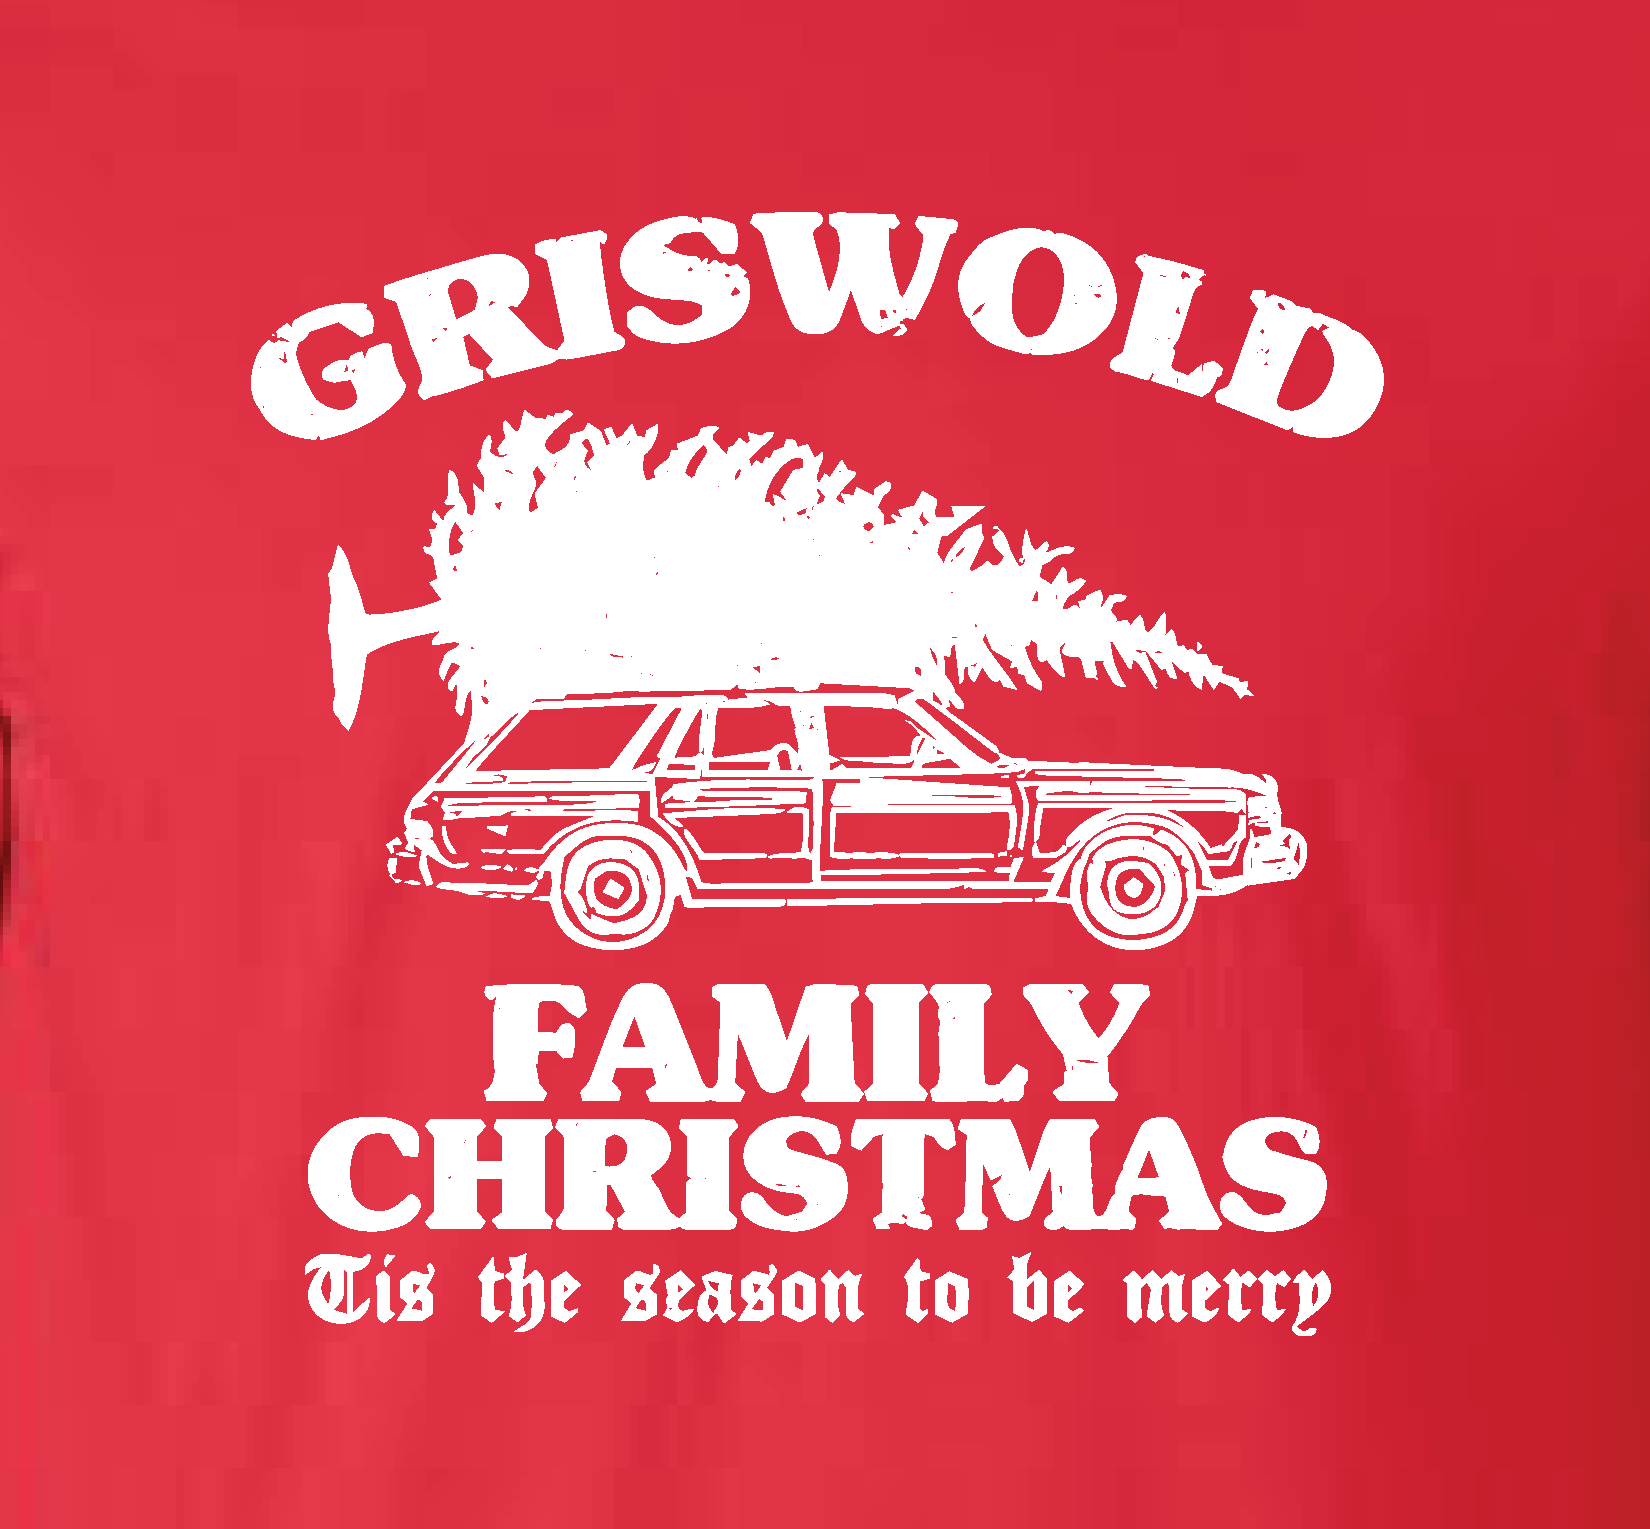 Griswold Family Christmas.Griswold Family Christmas